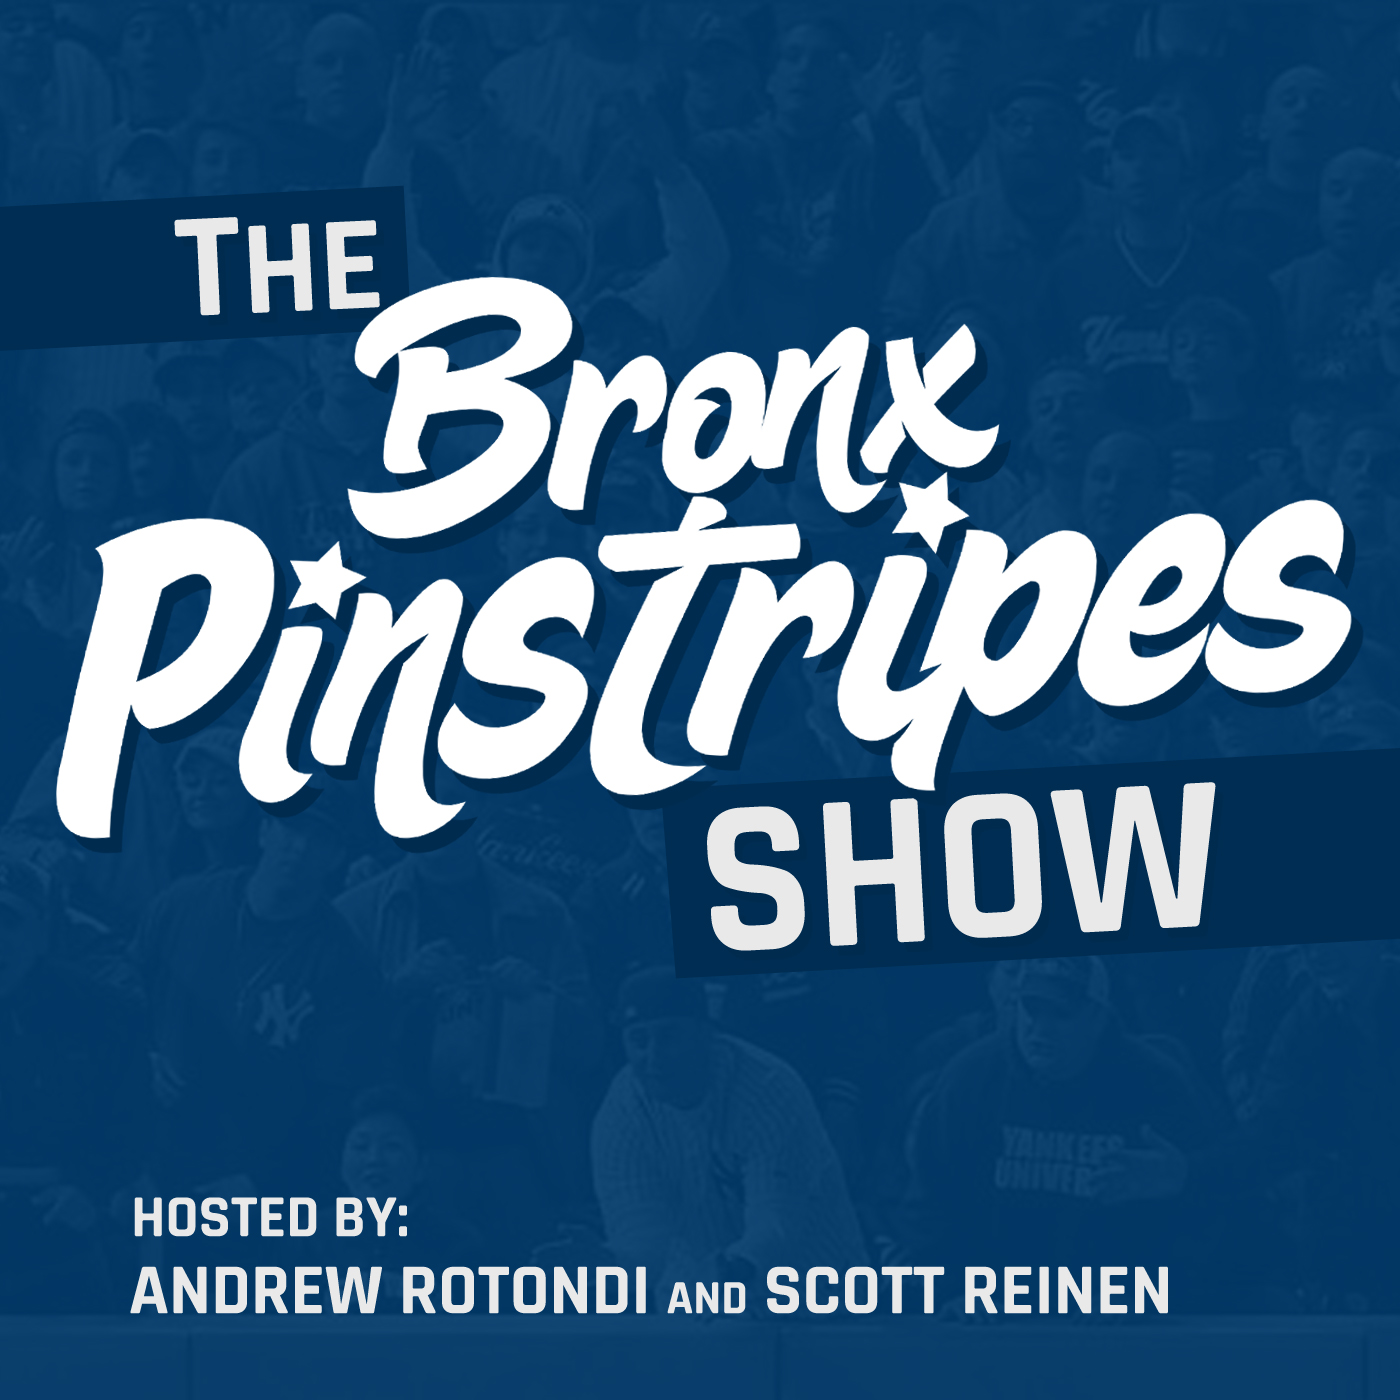 The Bronx Pinstripes Show - New York Yankees Podcast (unofficial)